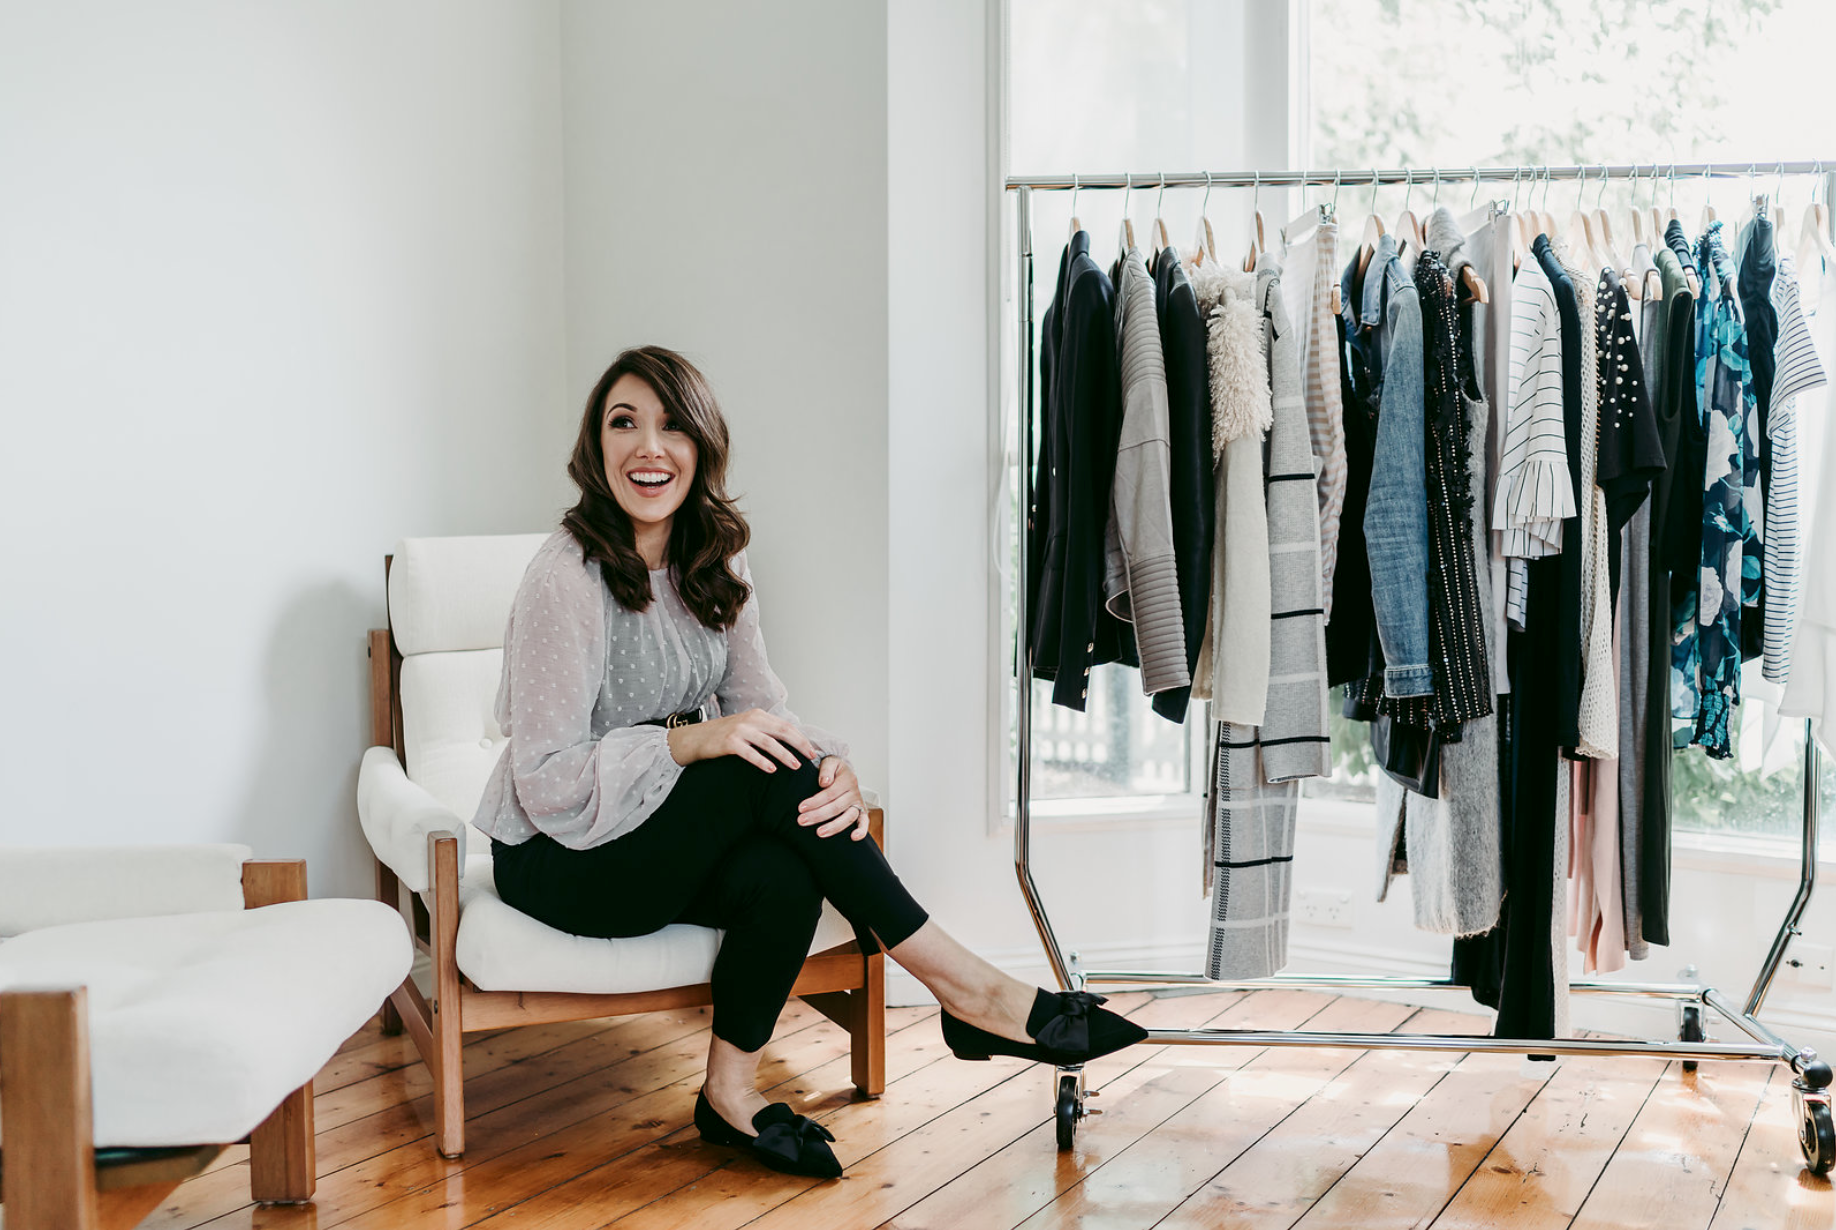 Q&A: Curate and Style your Life and Wardrobe with Jessica Ryan - Jessica Ryan is a mumma, a biz owner and a fashion guru who is all about curating your style with authenticity. She talks about losing her identity after becoming a mum, finding it again, chasing her passions and helping other women do the same.